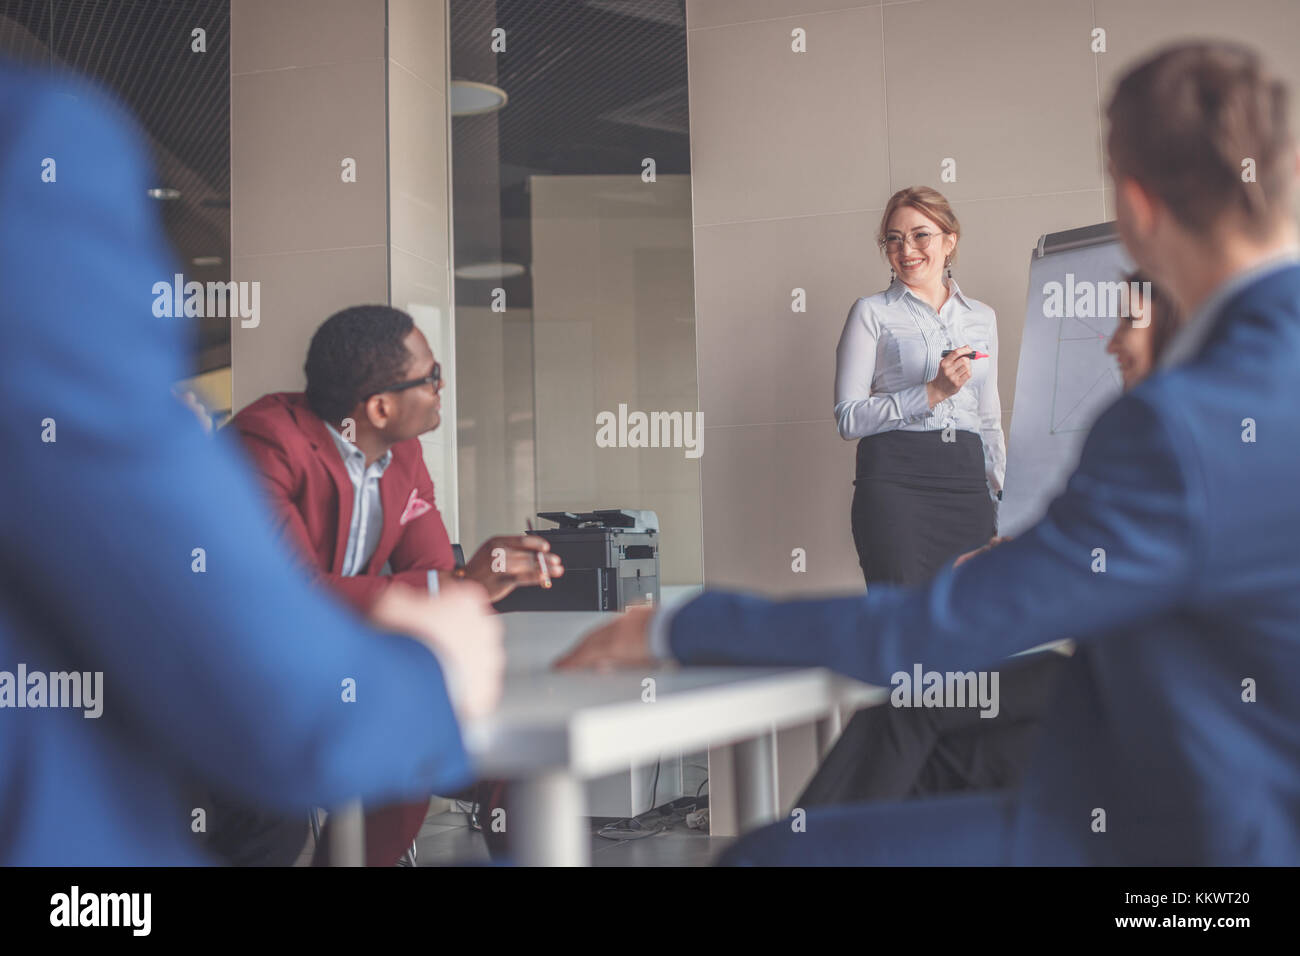 Business plan explained on flipchart by CEO to employees - Stock Image